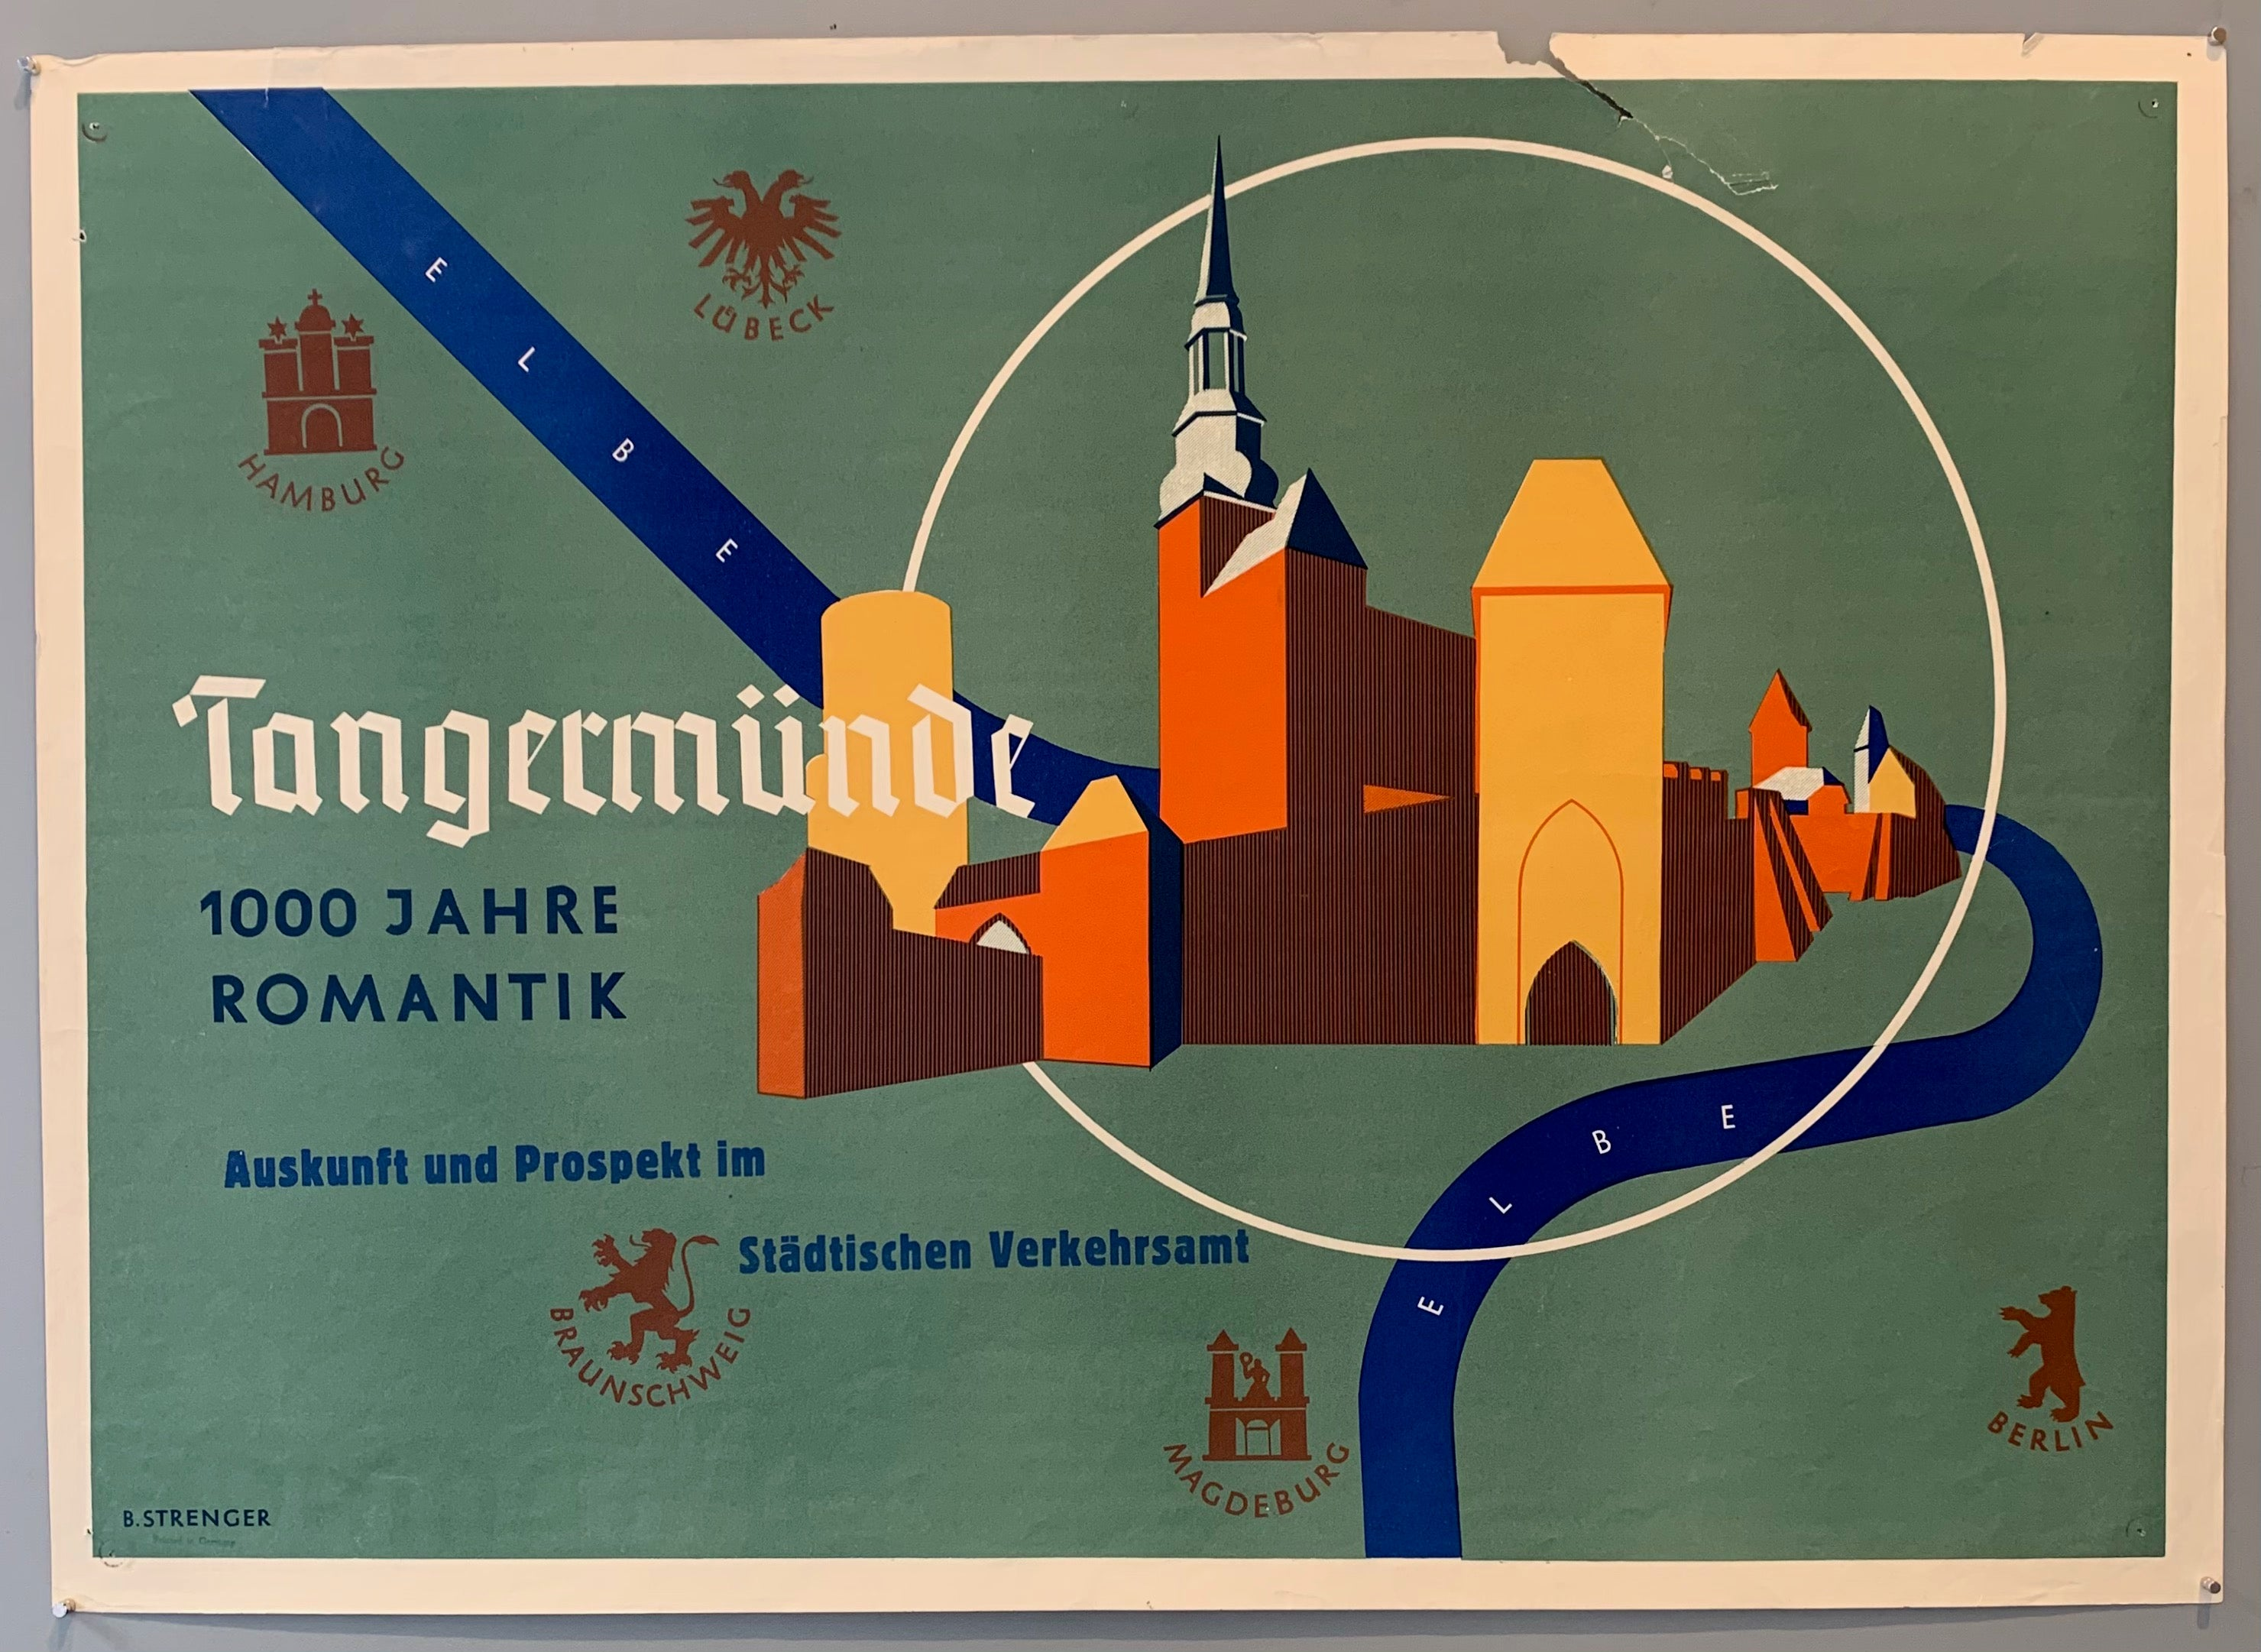 Poster for a small town in Germany called Tangermünde, which is a historic town on the Elbe river. Graphic shows landmarks from the town with the Elbe running through the buildings. Crests from Berlin, Magdeburg, Braunschweig, Hamburg, and Lubeck are scattered in the background.